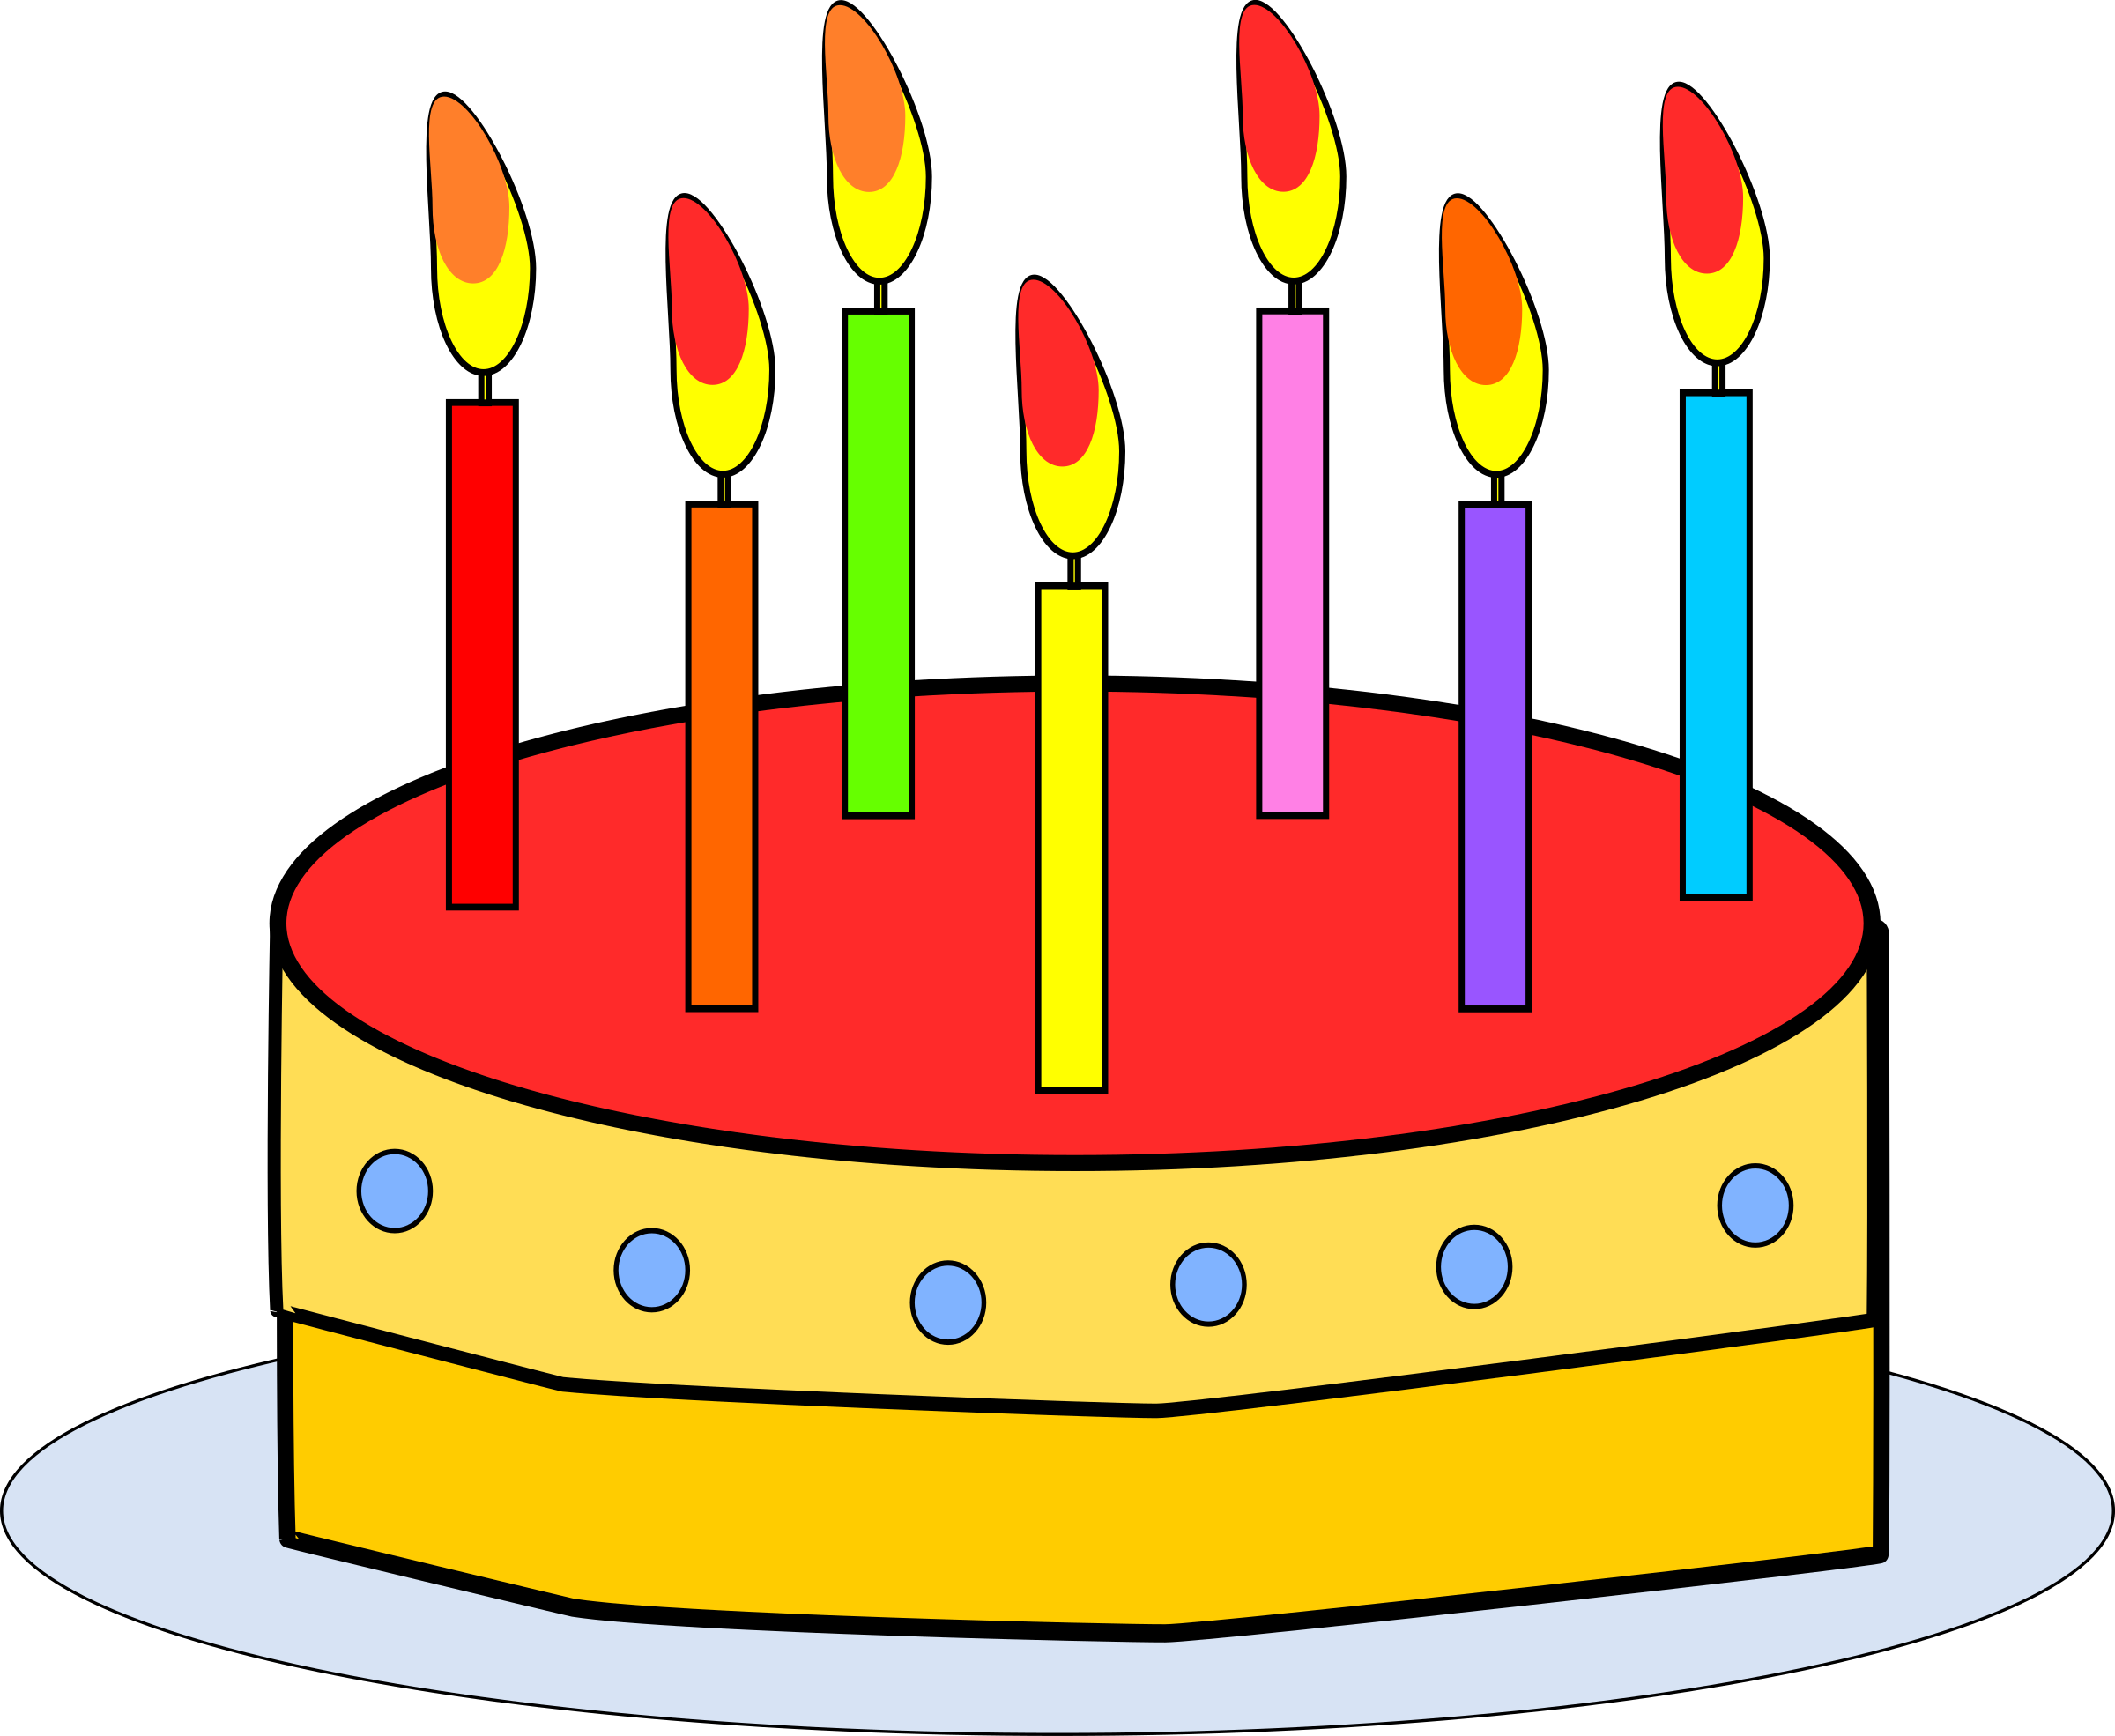 Cake cartoon. Clipart of cakes by